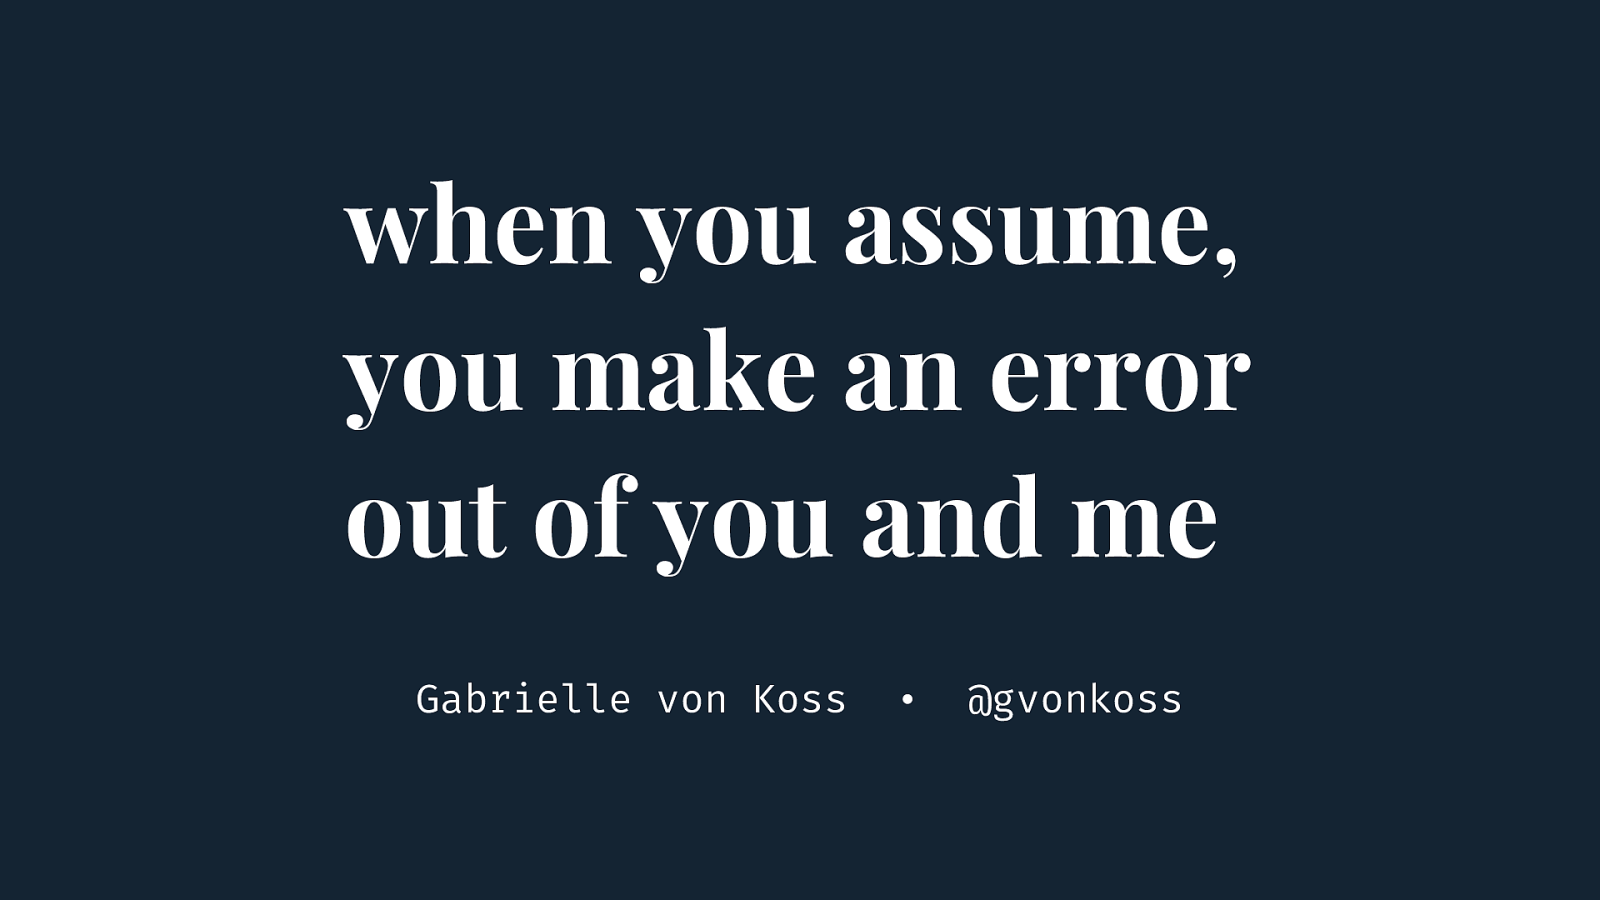 When you assume, you make an error out of you and me